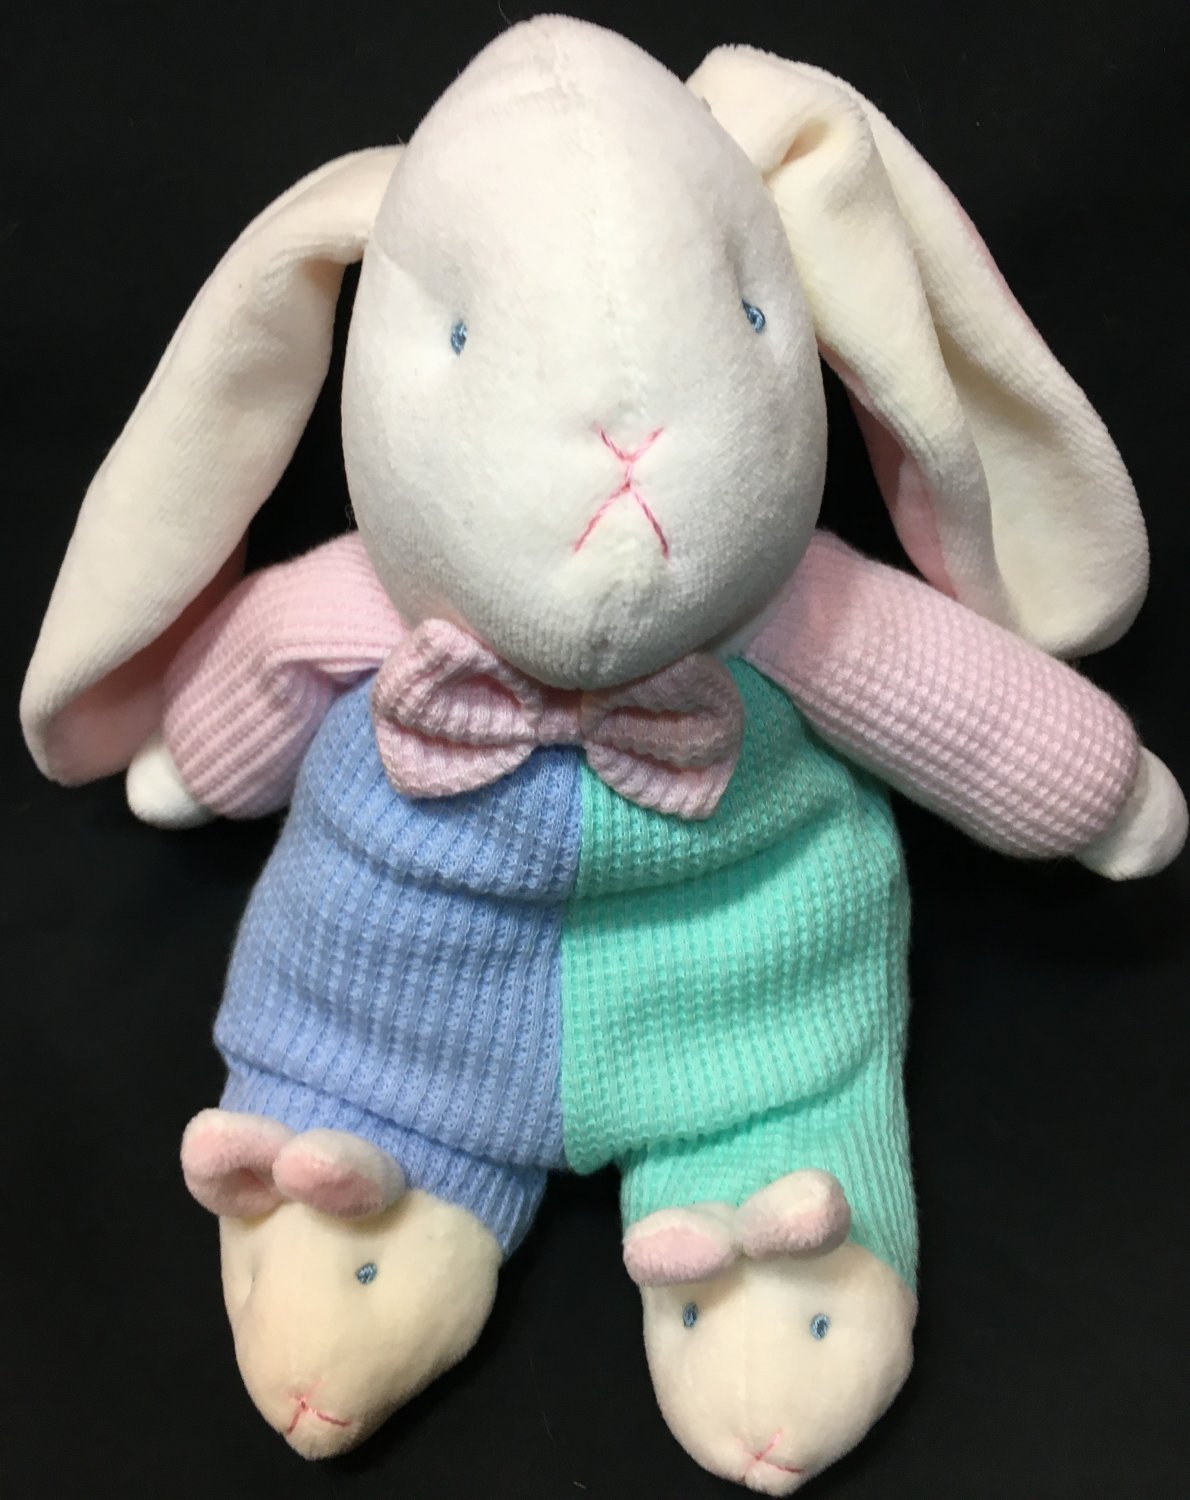 Soft Dreams Pastel Thermal Waffle Knit Bunny Rattle RARE Plush Rabbit Slippers